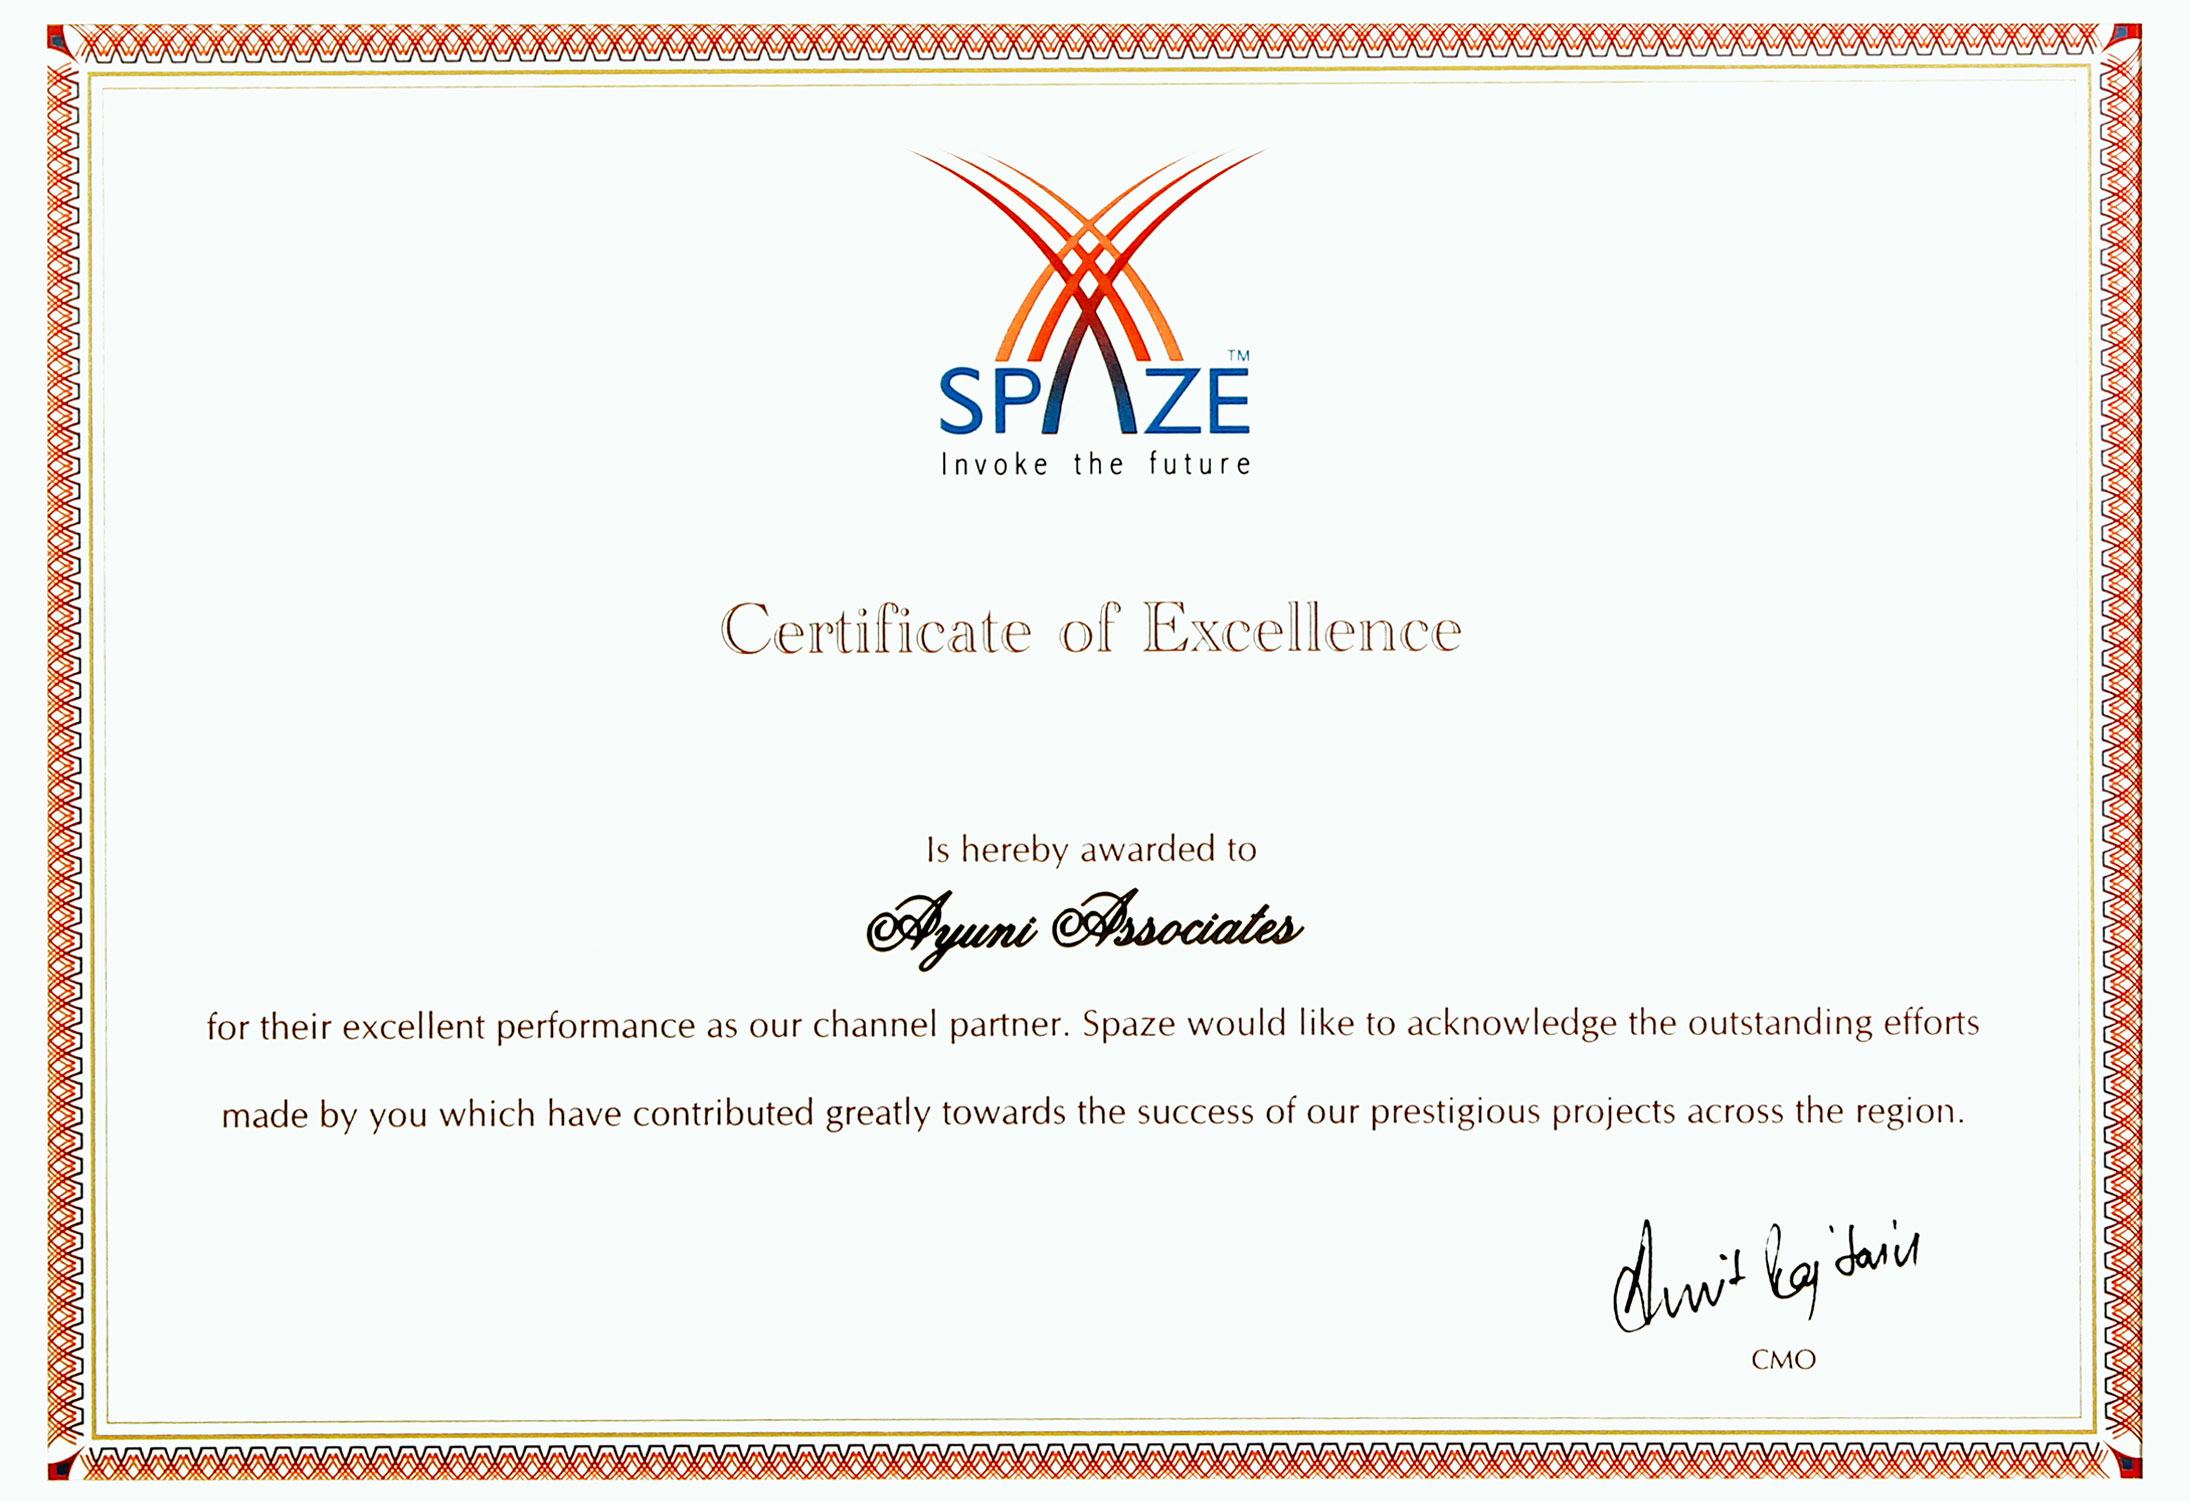 Spaze Group- Certificate of Excellence